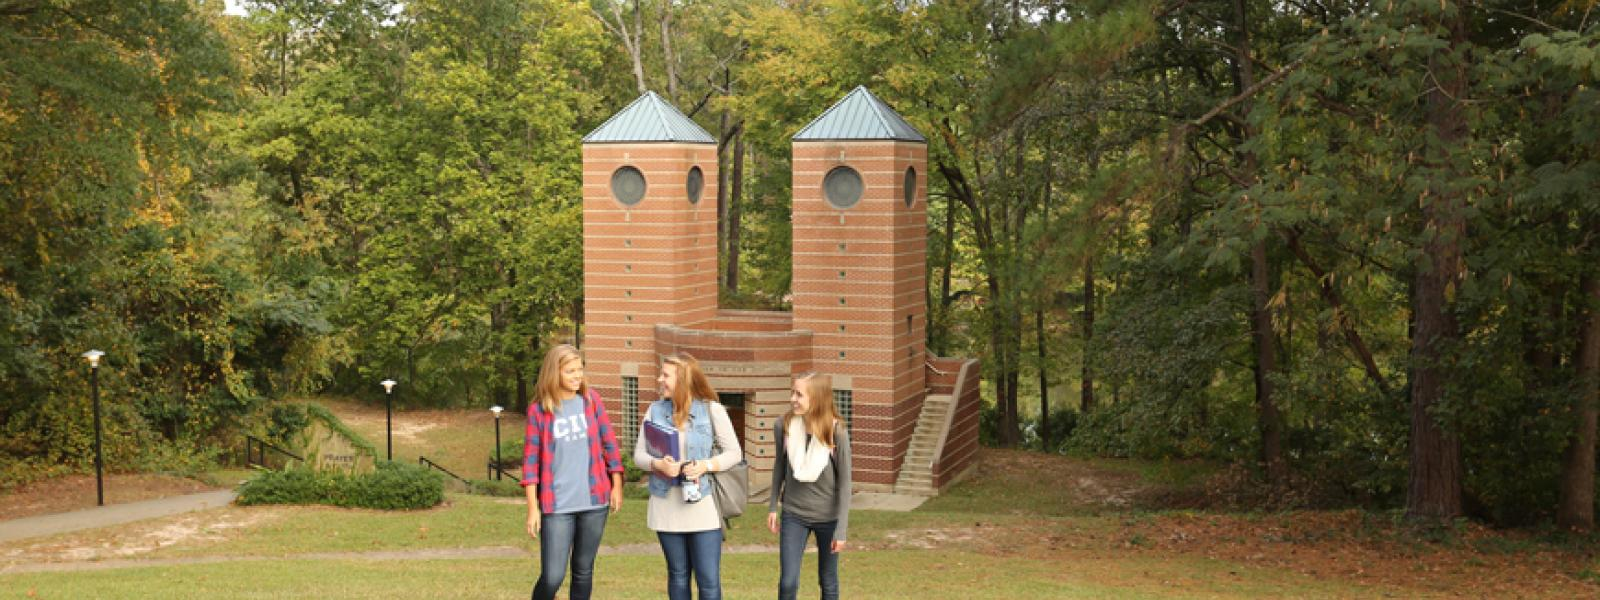 CIU students in front of the prayer towers.